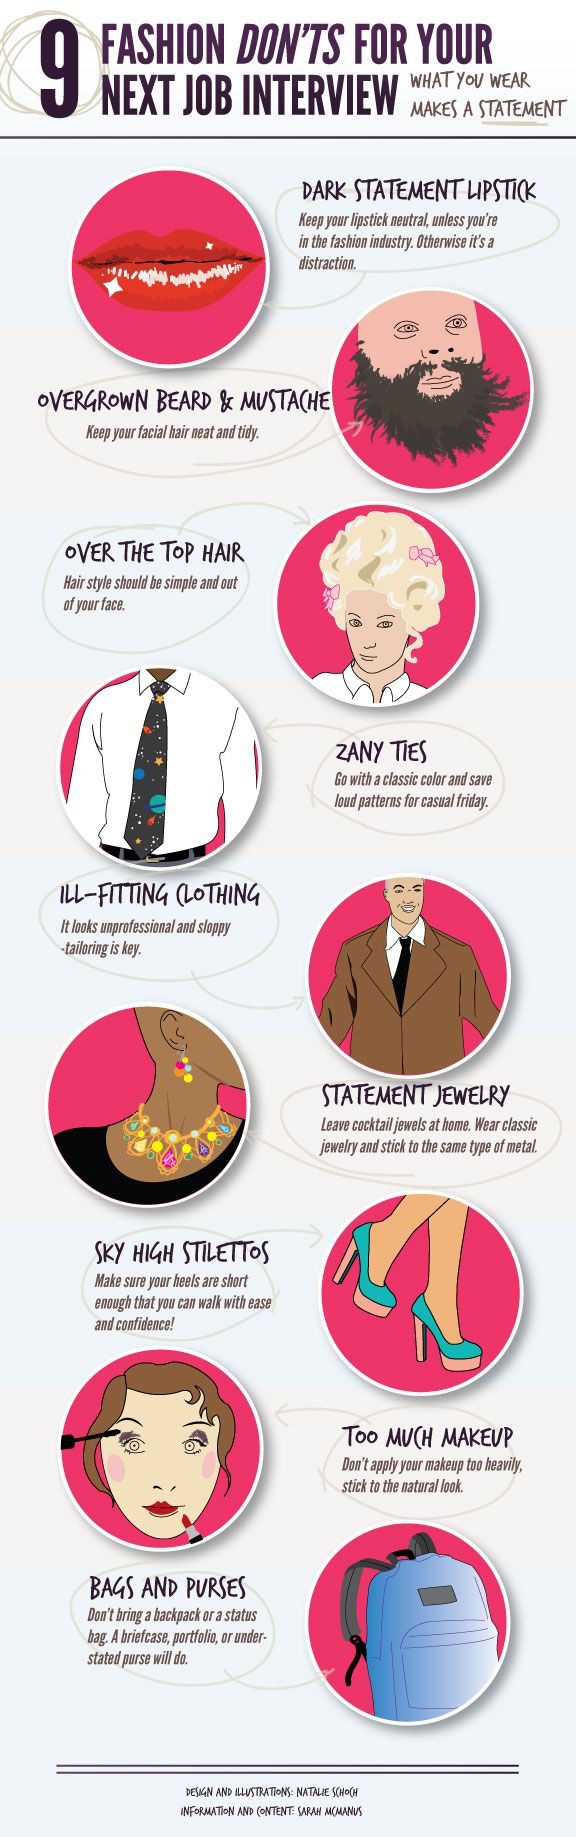 9 fashion donts for your next job interview careerbliss